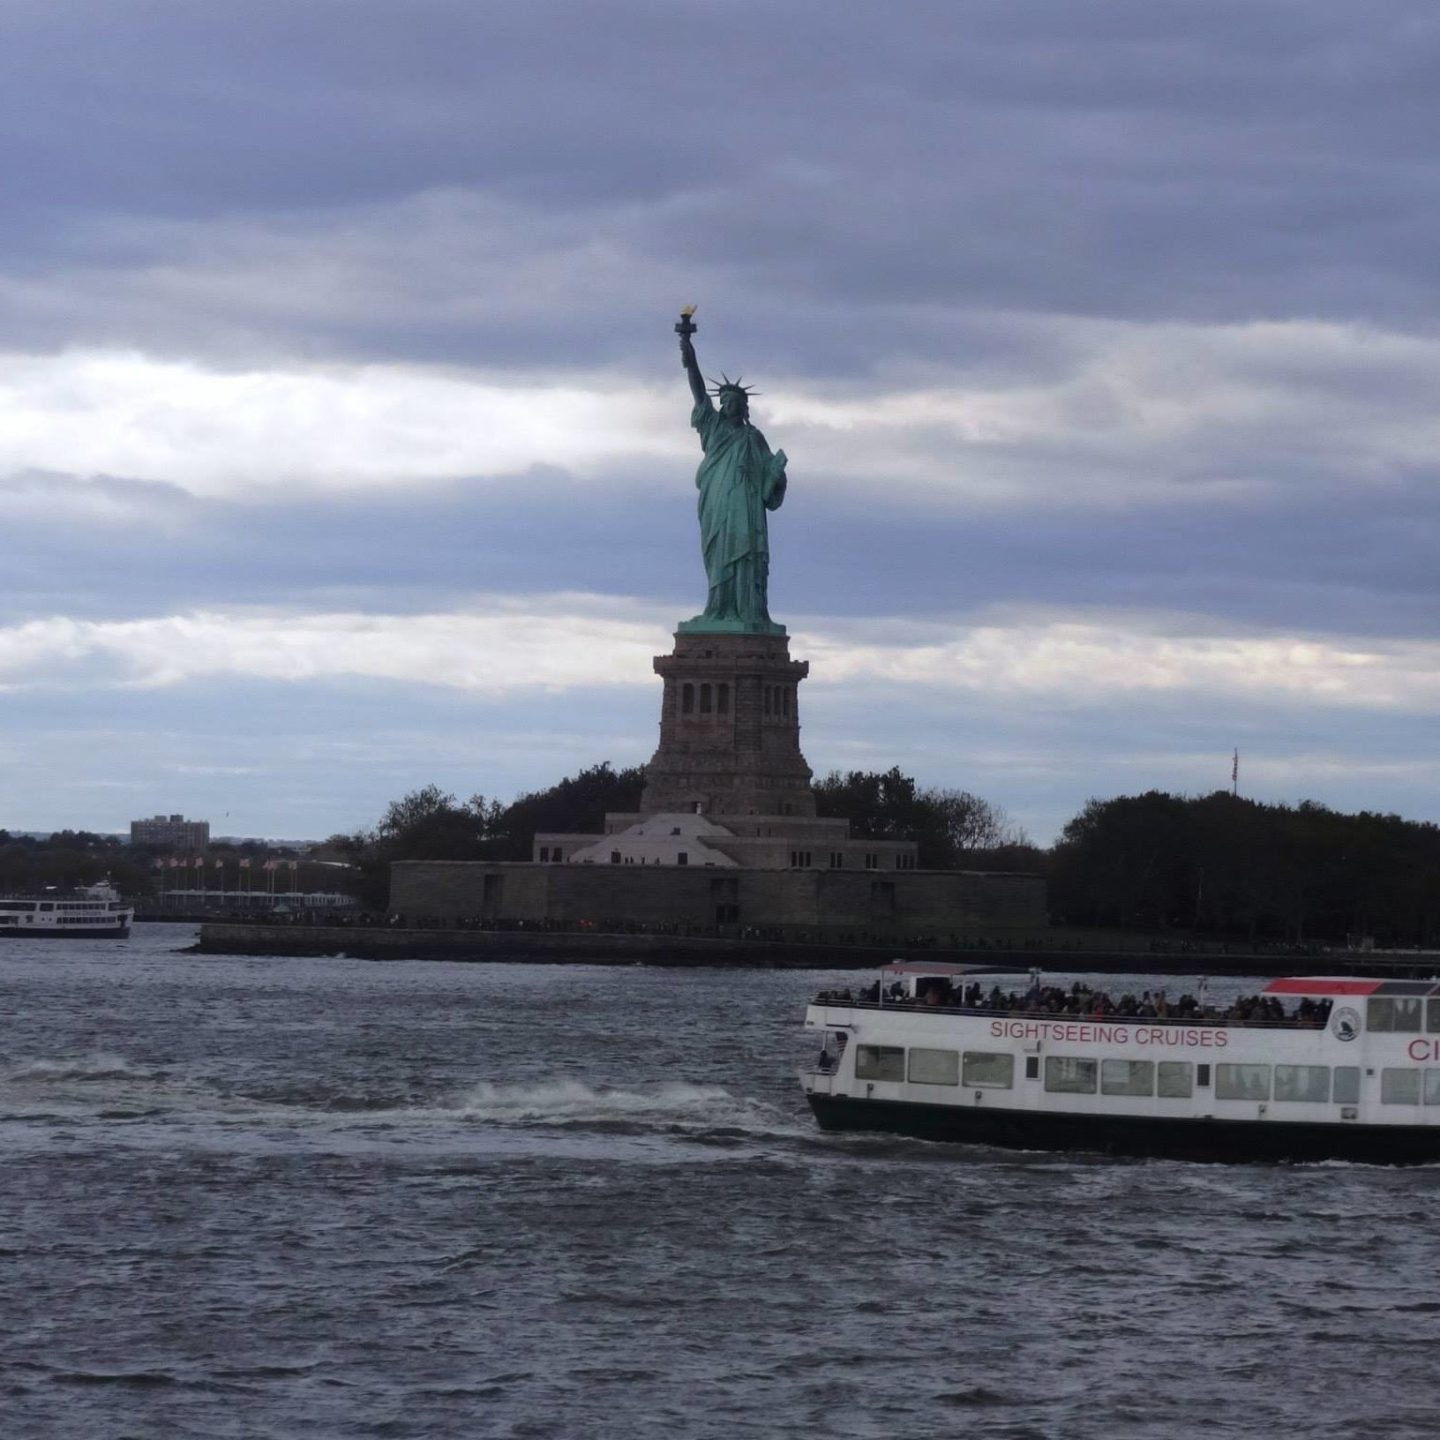 United States Statue of Liberty